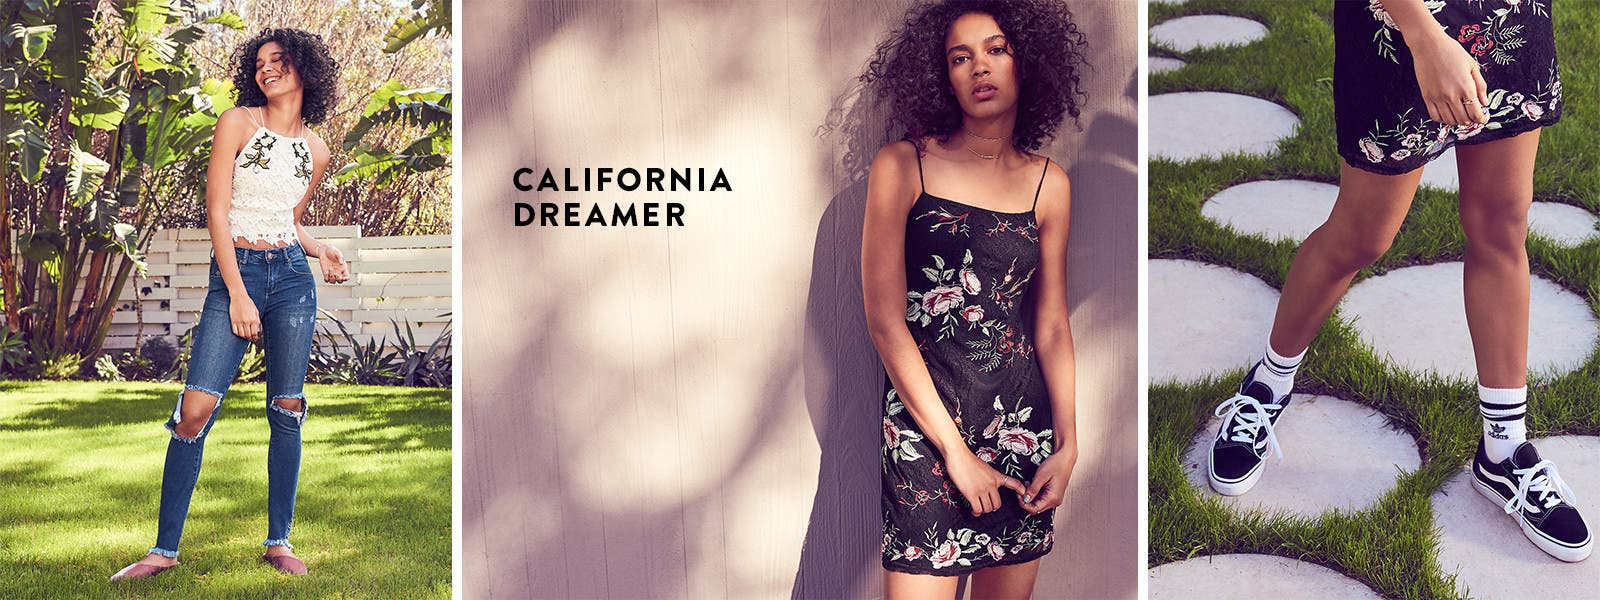 California dreamer: summer trends in women's clothing, shoes and accessories.